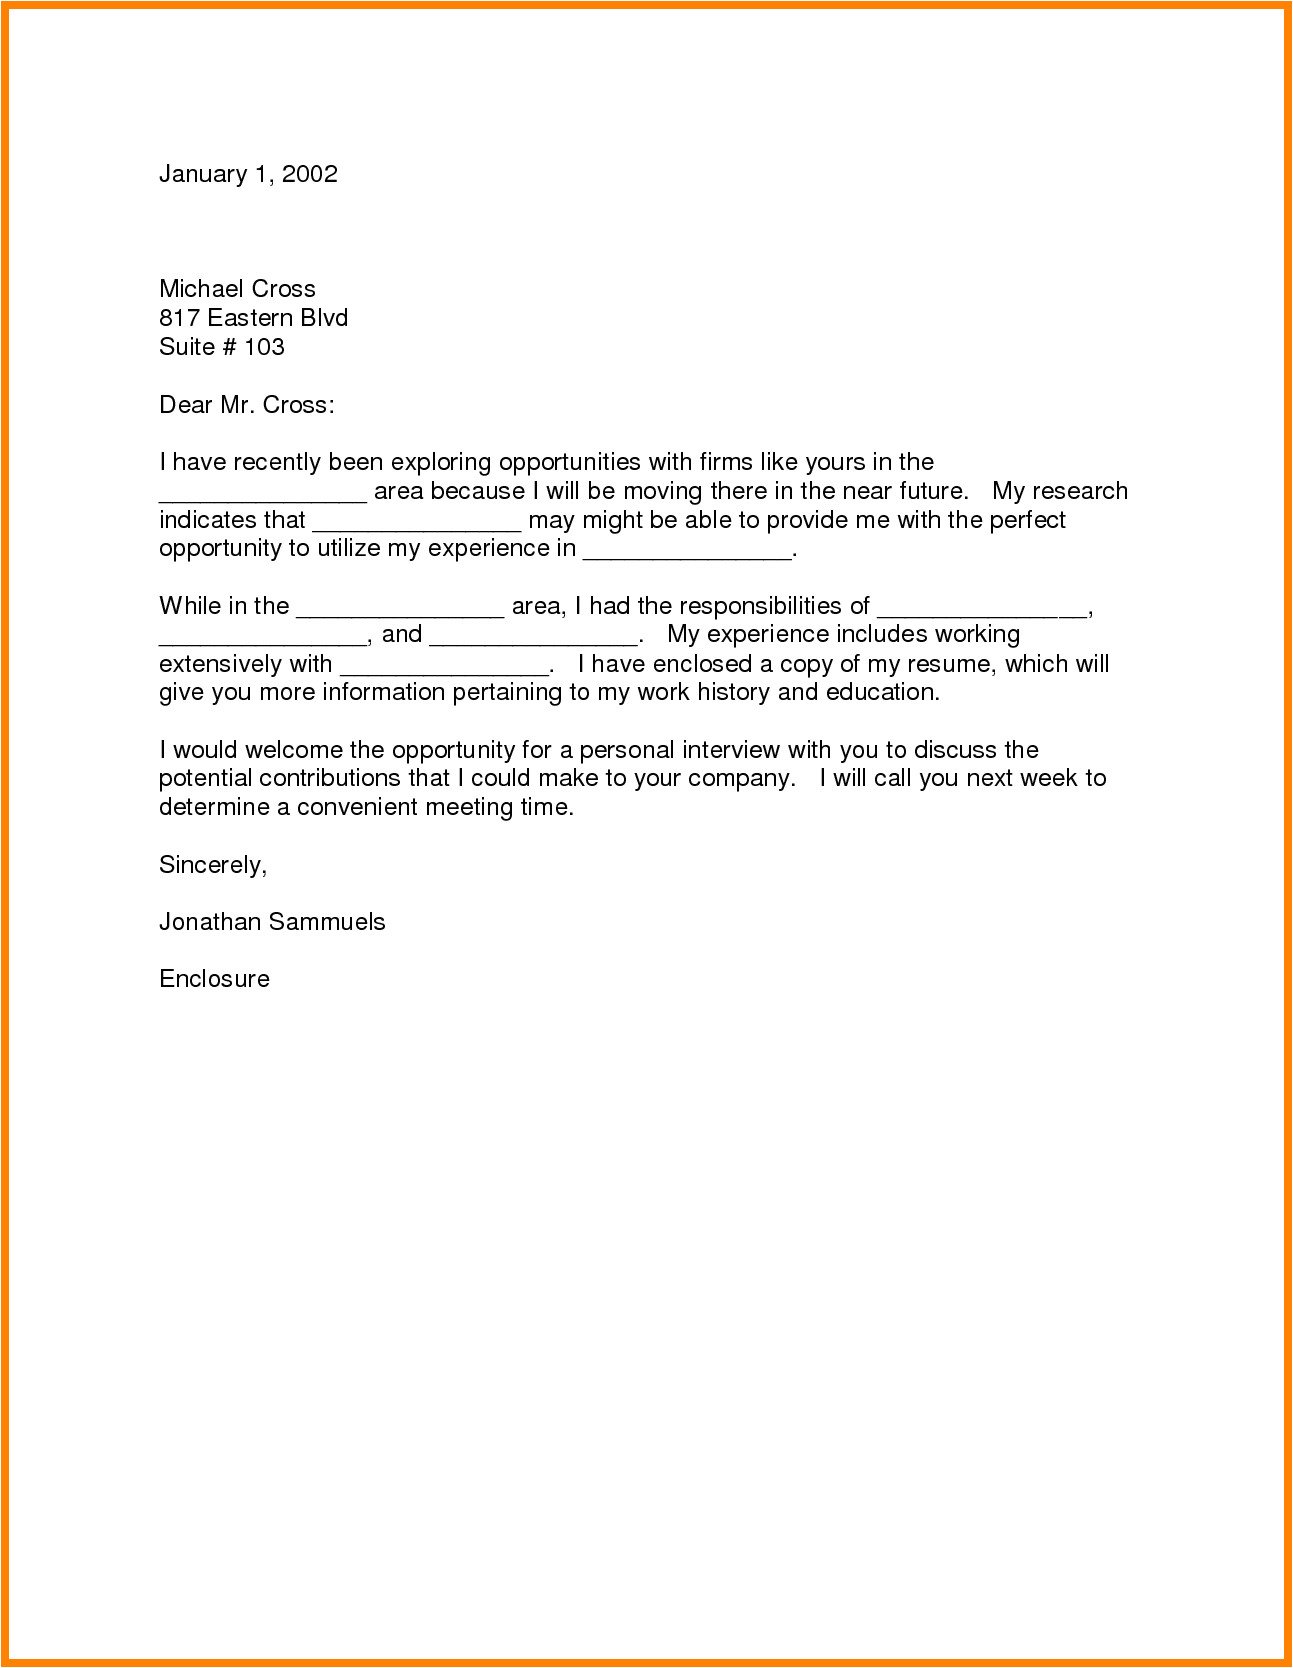 5 relocation cover letter